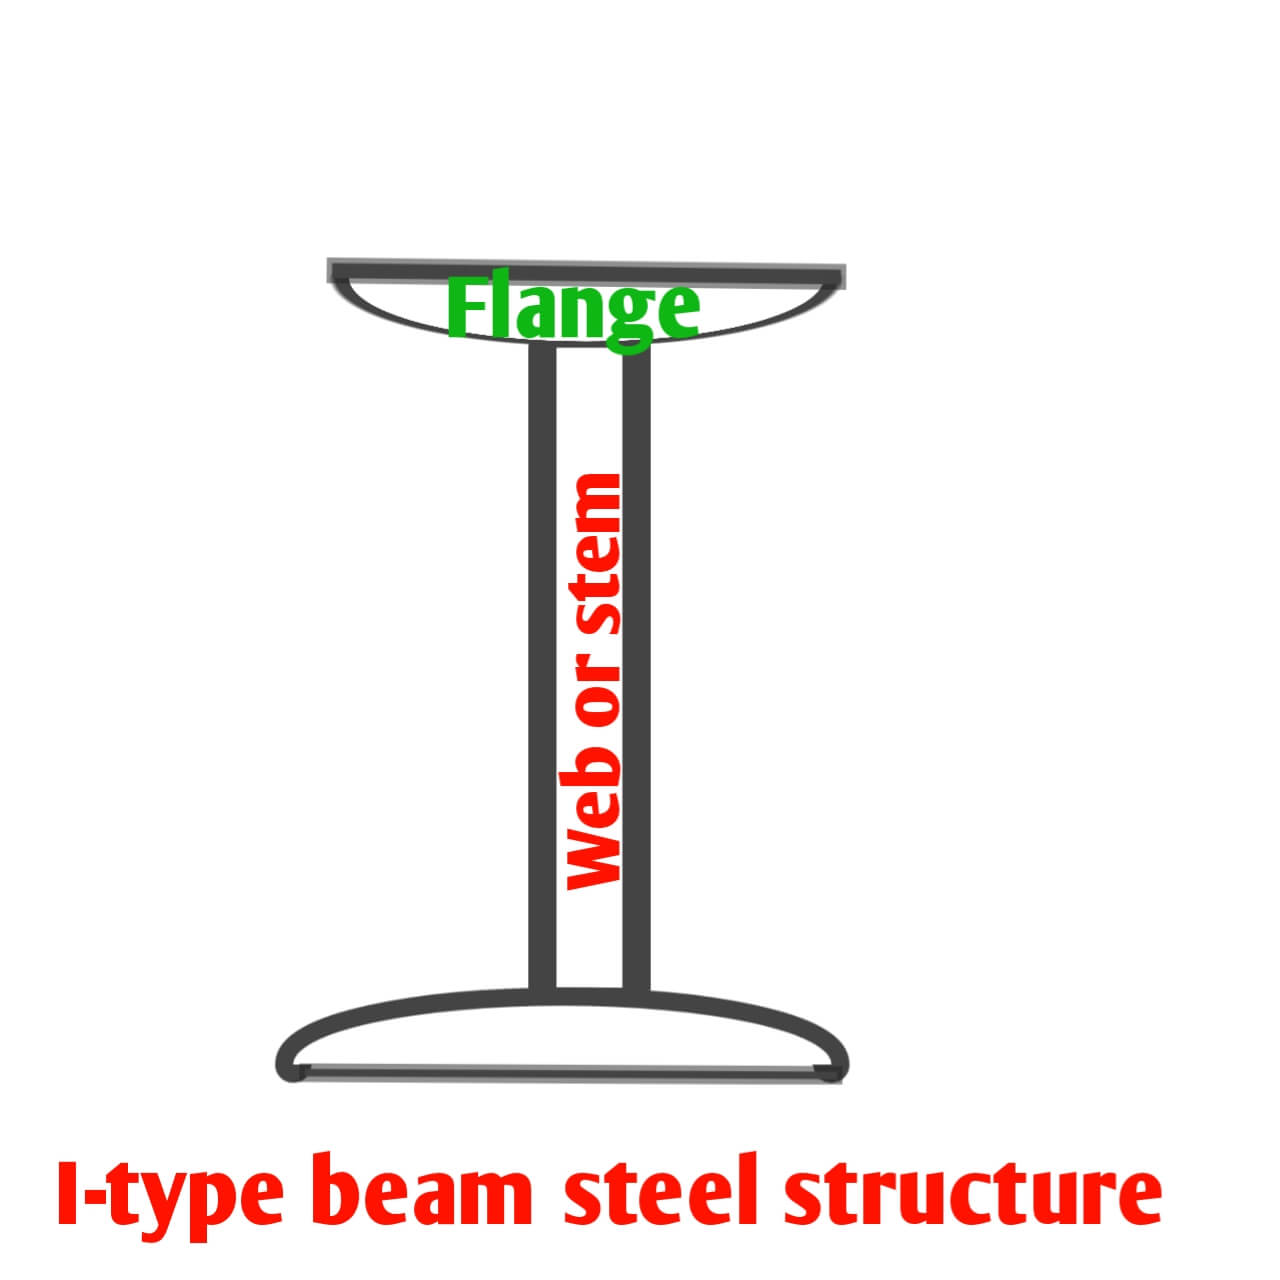 I- section of beam